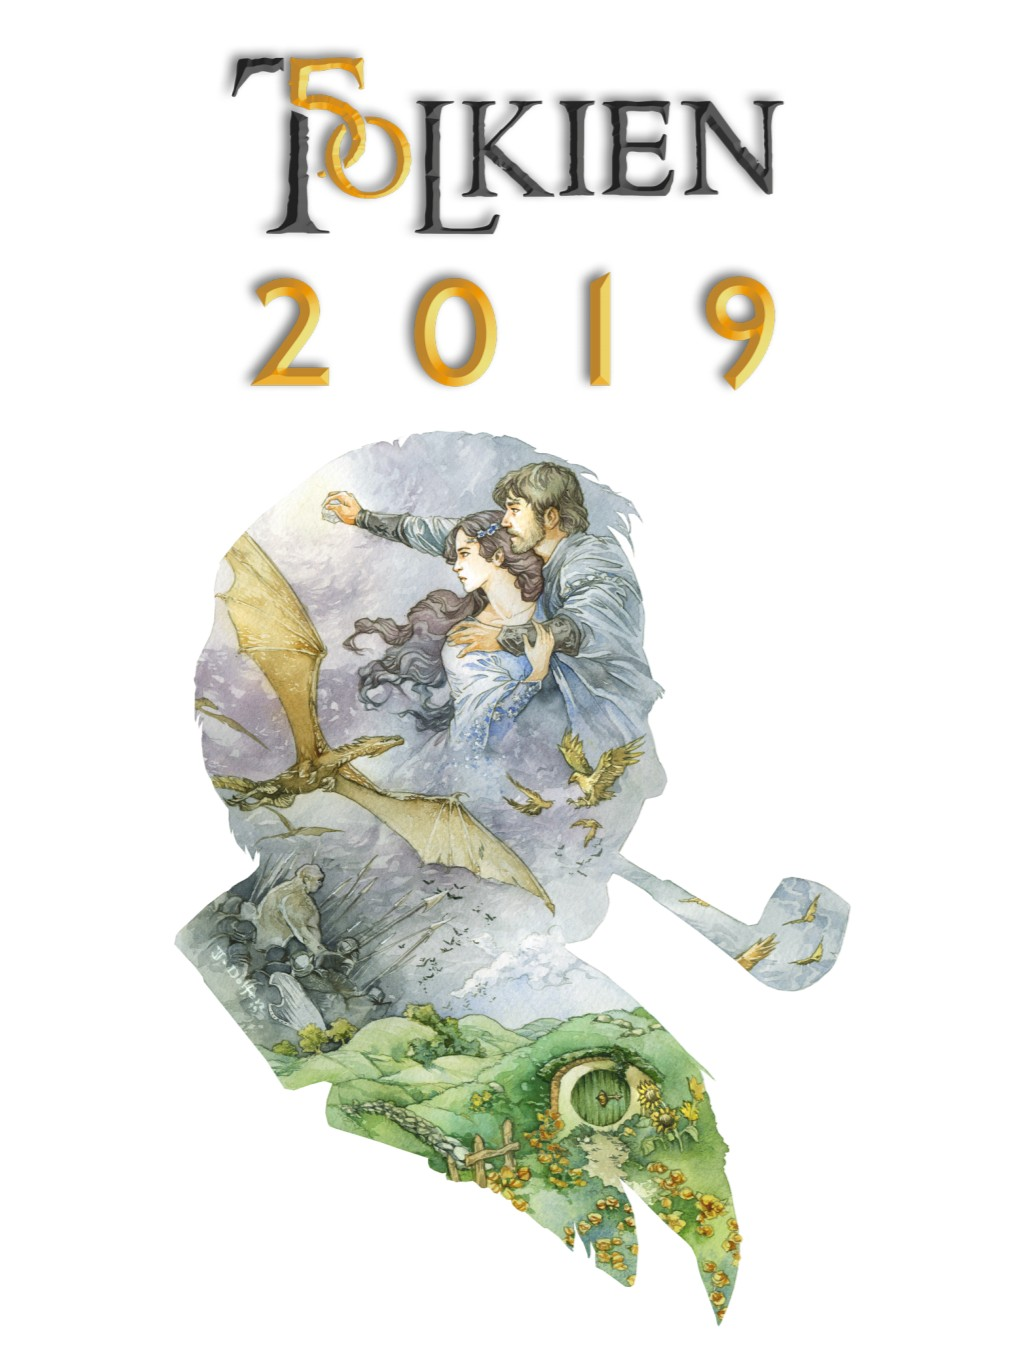 Film music concert with The People's Orchestra at Tolkien 2019